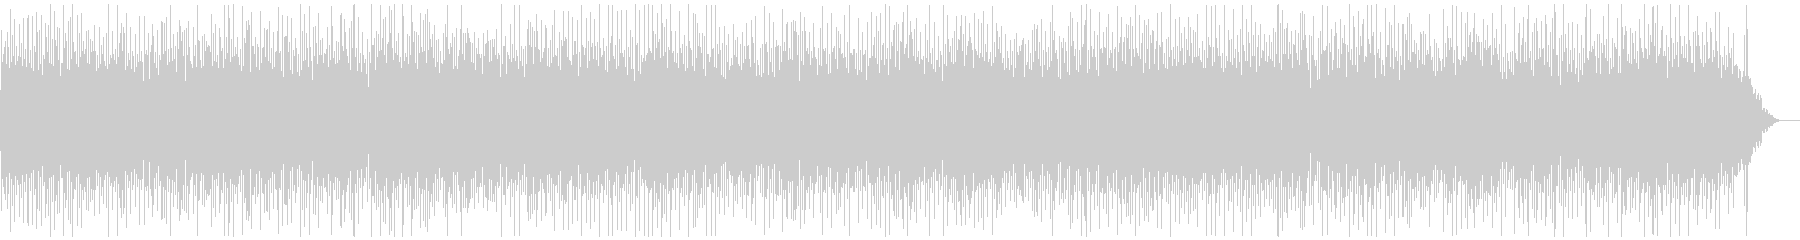 Hilarious celtic dance's unreproduced waveform